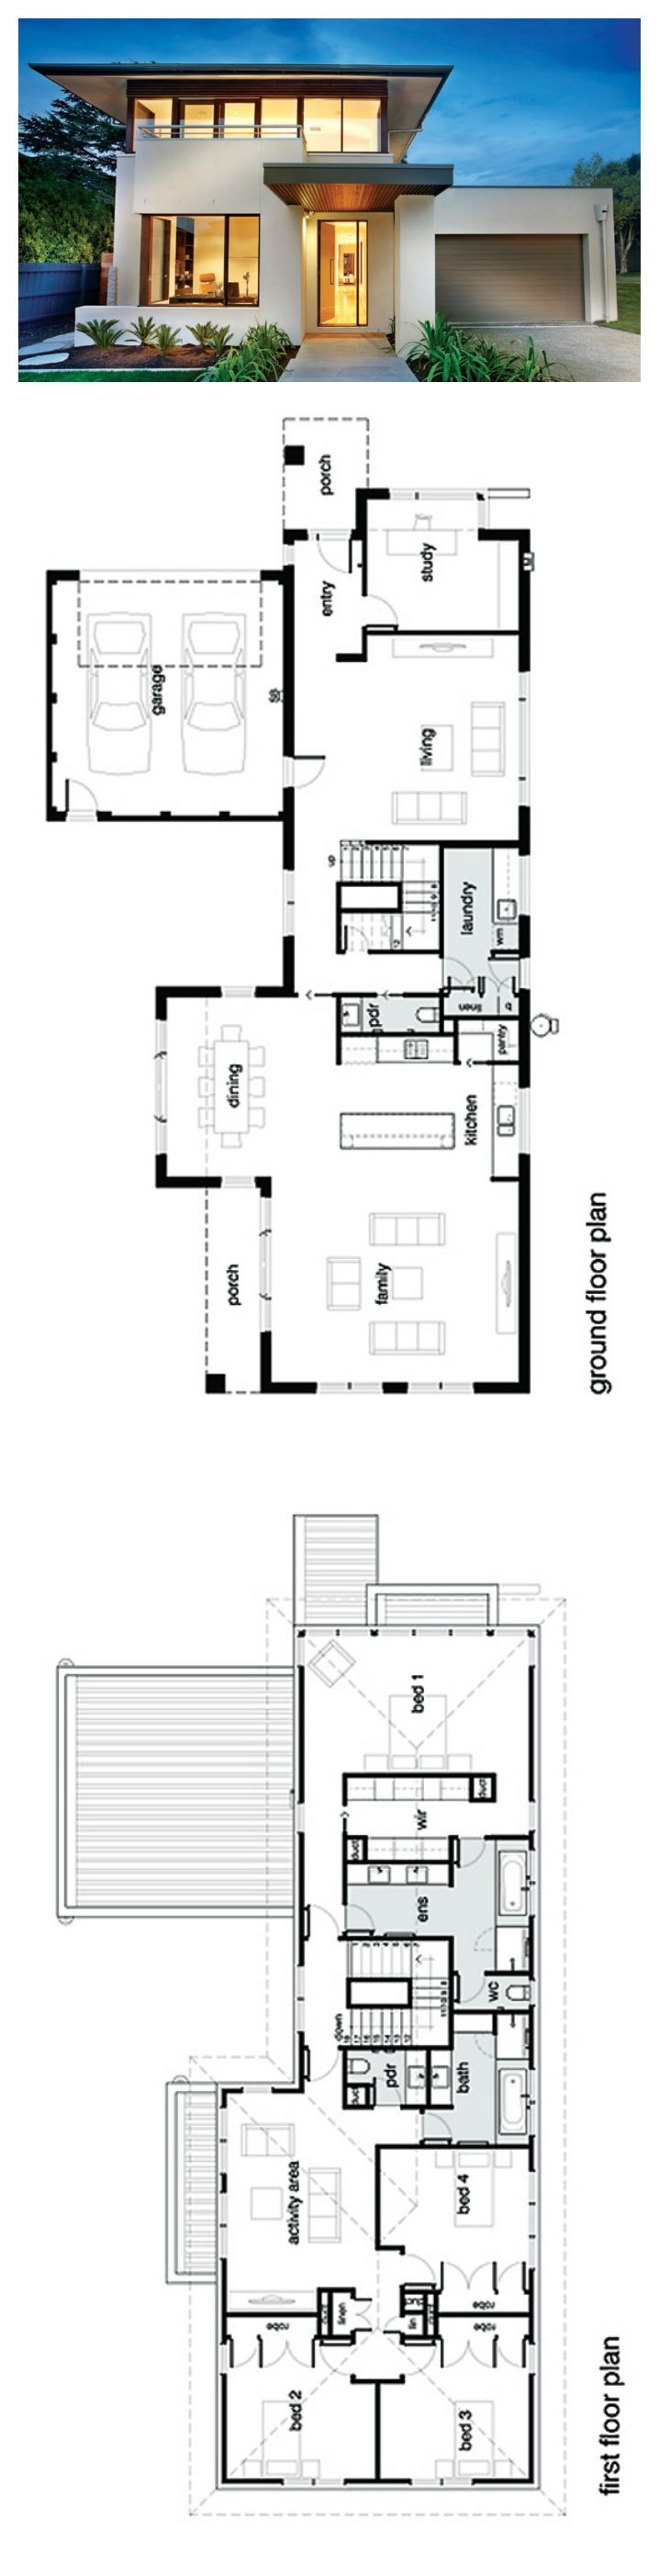 Best 25 modern house plans ideas on pinterest for Modern house plans